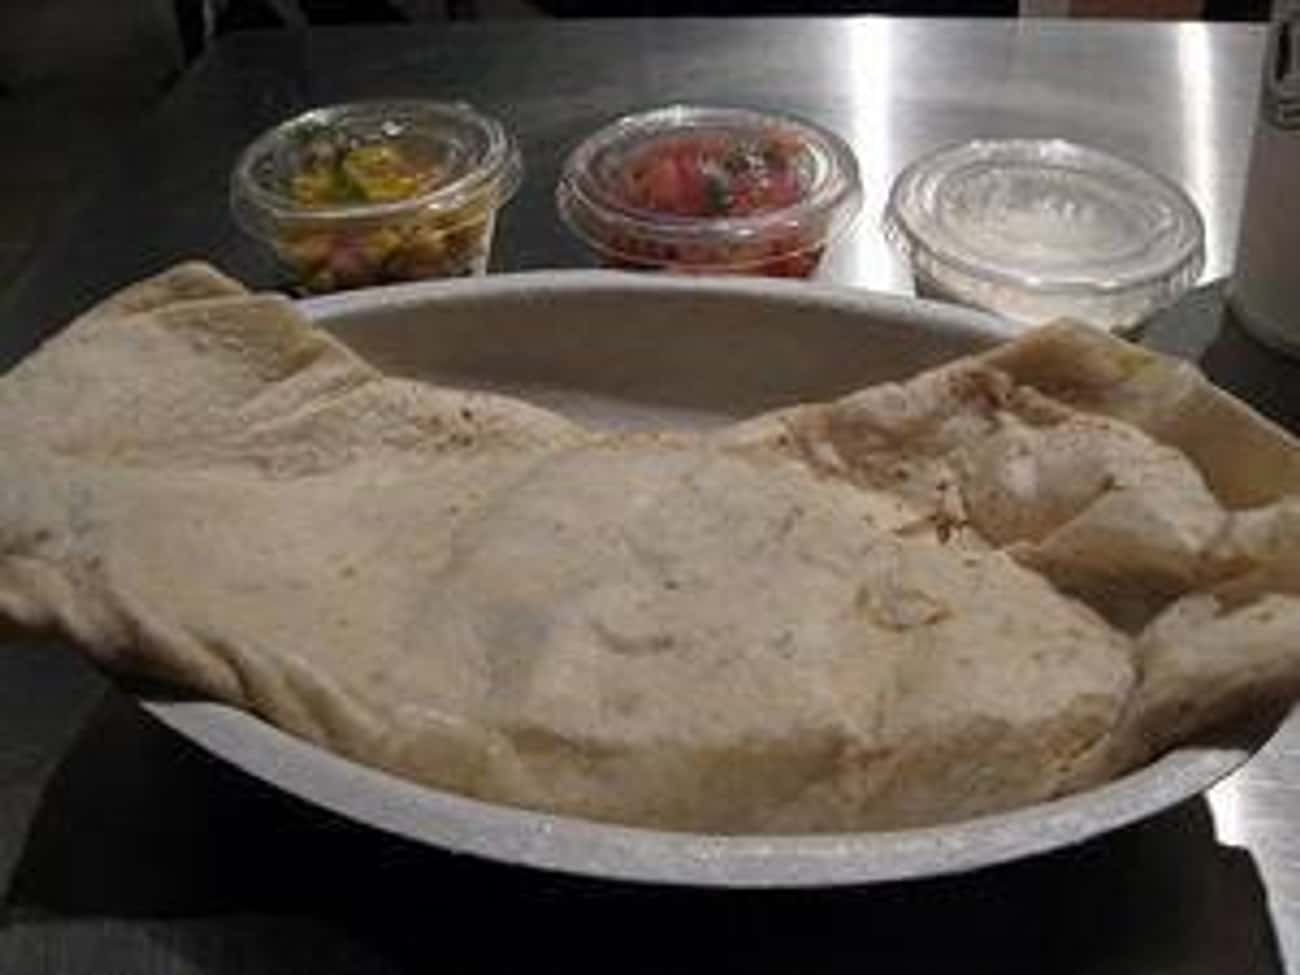 Quesadilla is listed (or ranked) 3 on the list Chipotle Secret Menu Items